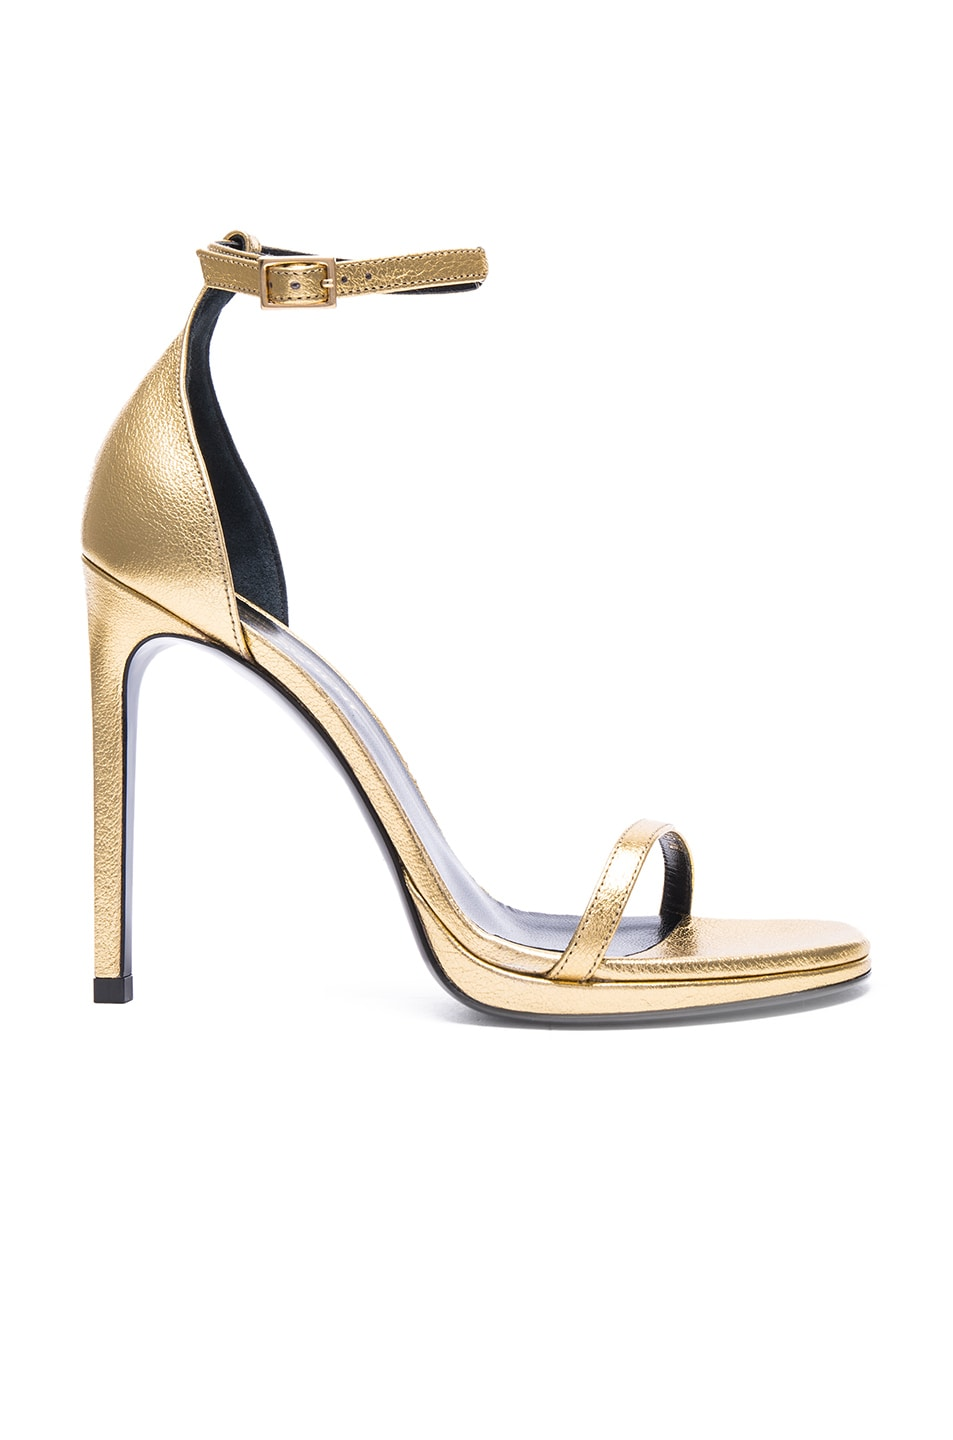 Image 1 of Saint Laurent Metallic Leather Jane Sandals in Gold